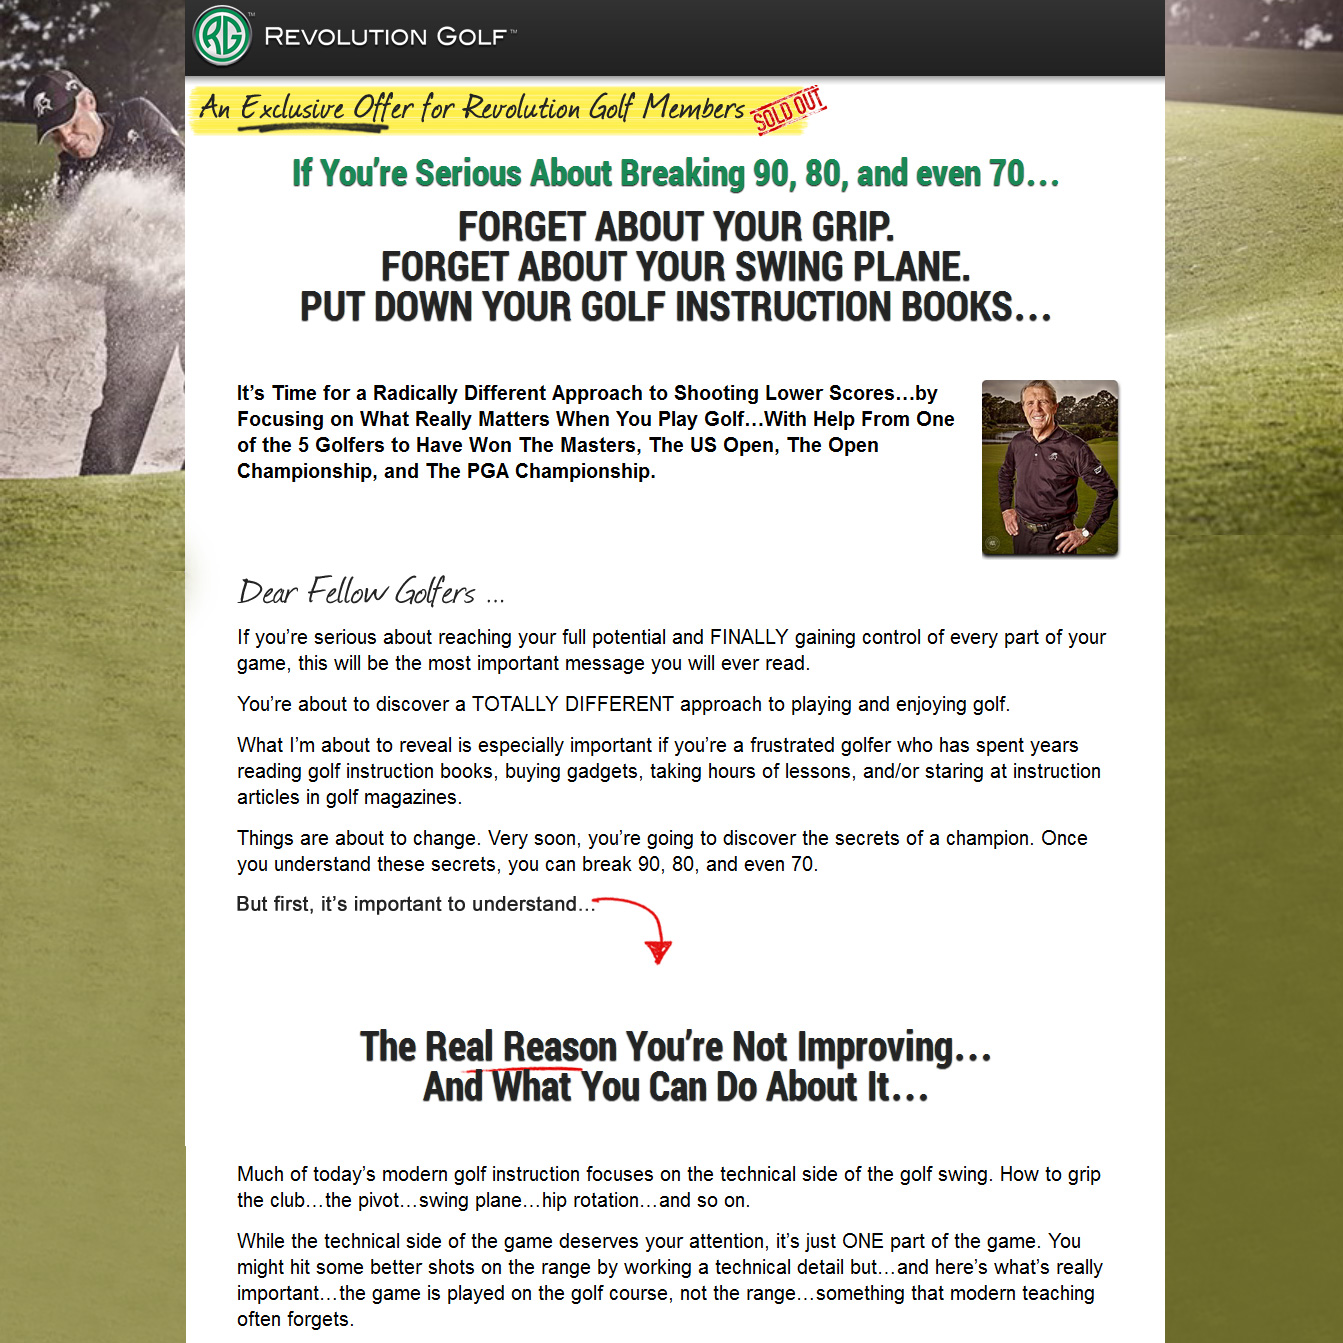 "Copy for Gary Player instructional DVD.  In 2013, Gary Player filmed an instructional series called A Game for Life. This copy sold the DVD series. There's also an online version. The ""big idea"" was to forget about more standard instructional approaches and discover how to get the ball around the golf course. The DVDs have been wildly popular."